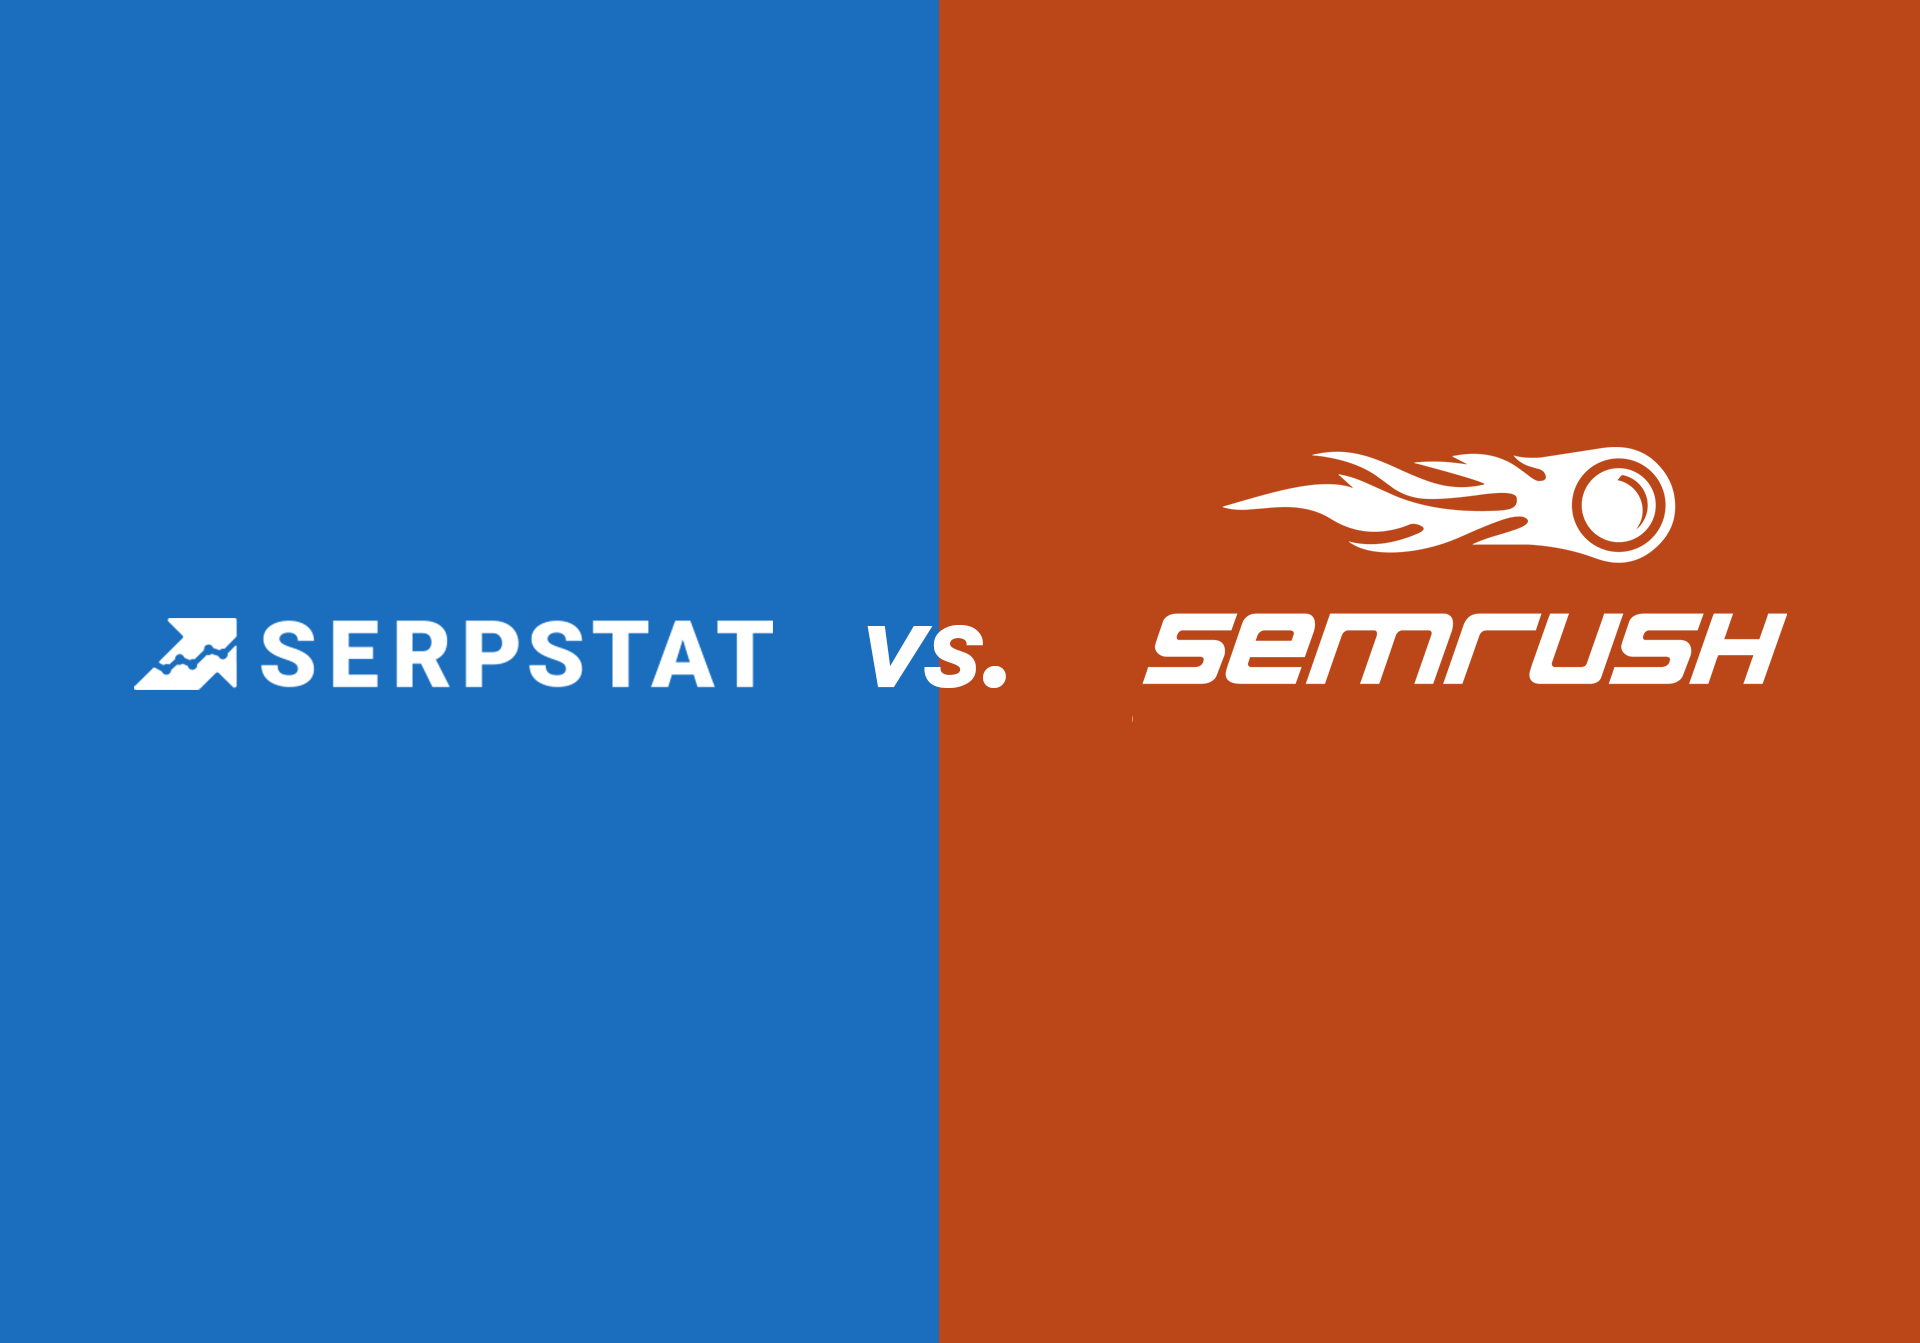 30 Percent Off Online Coupon Printable Semrush April